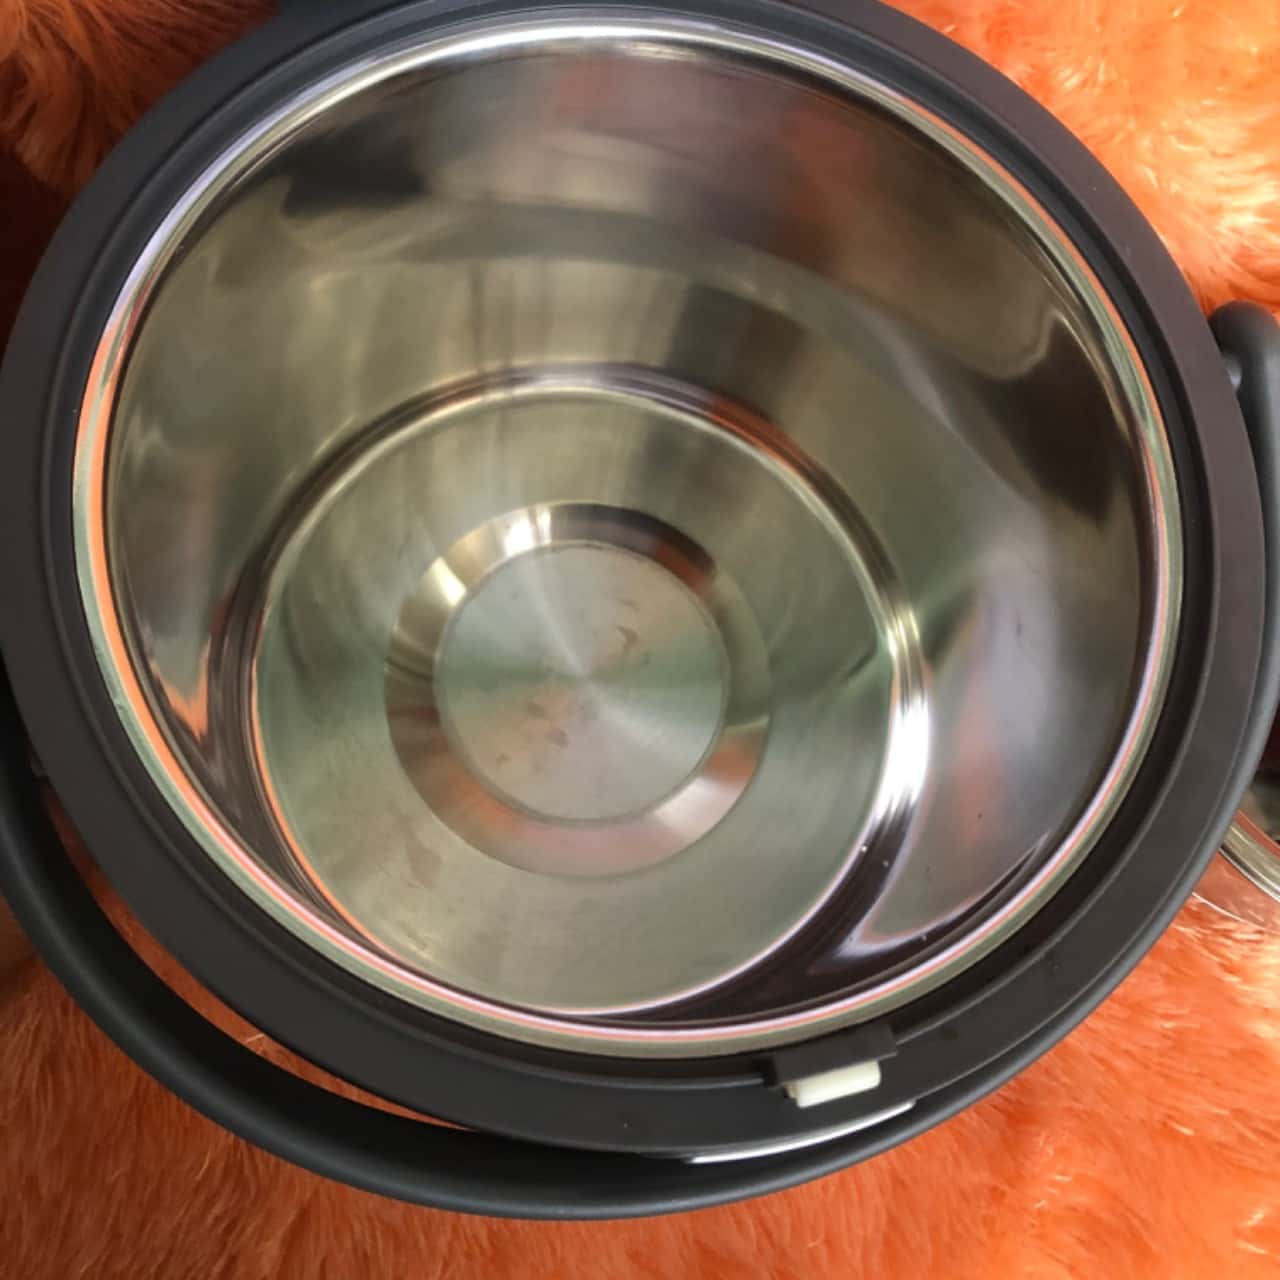 EcoPot Thermal Cooker 24/7 with Car Adapter